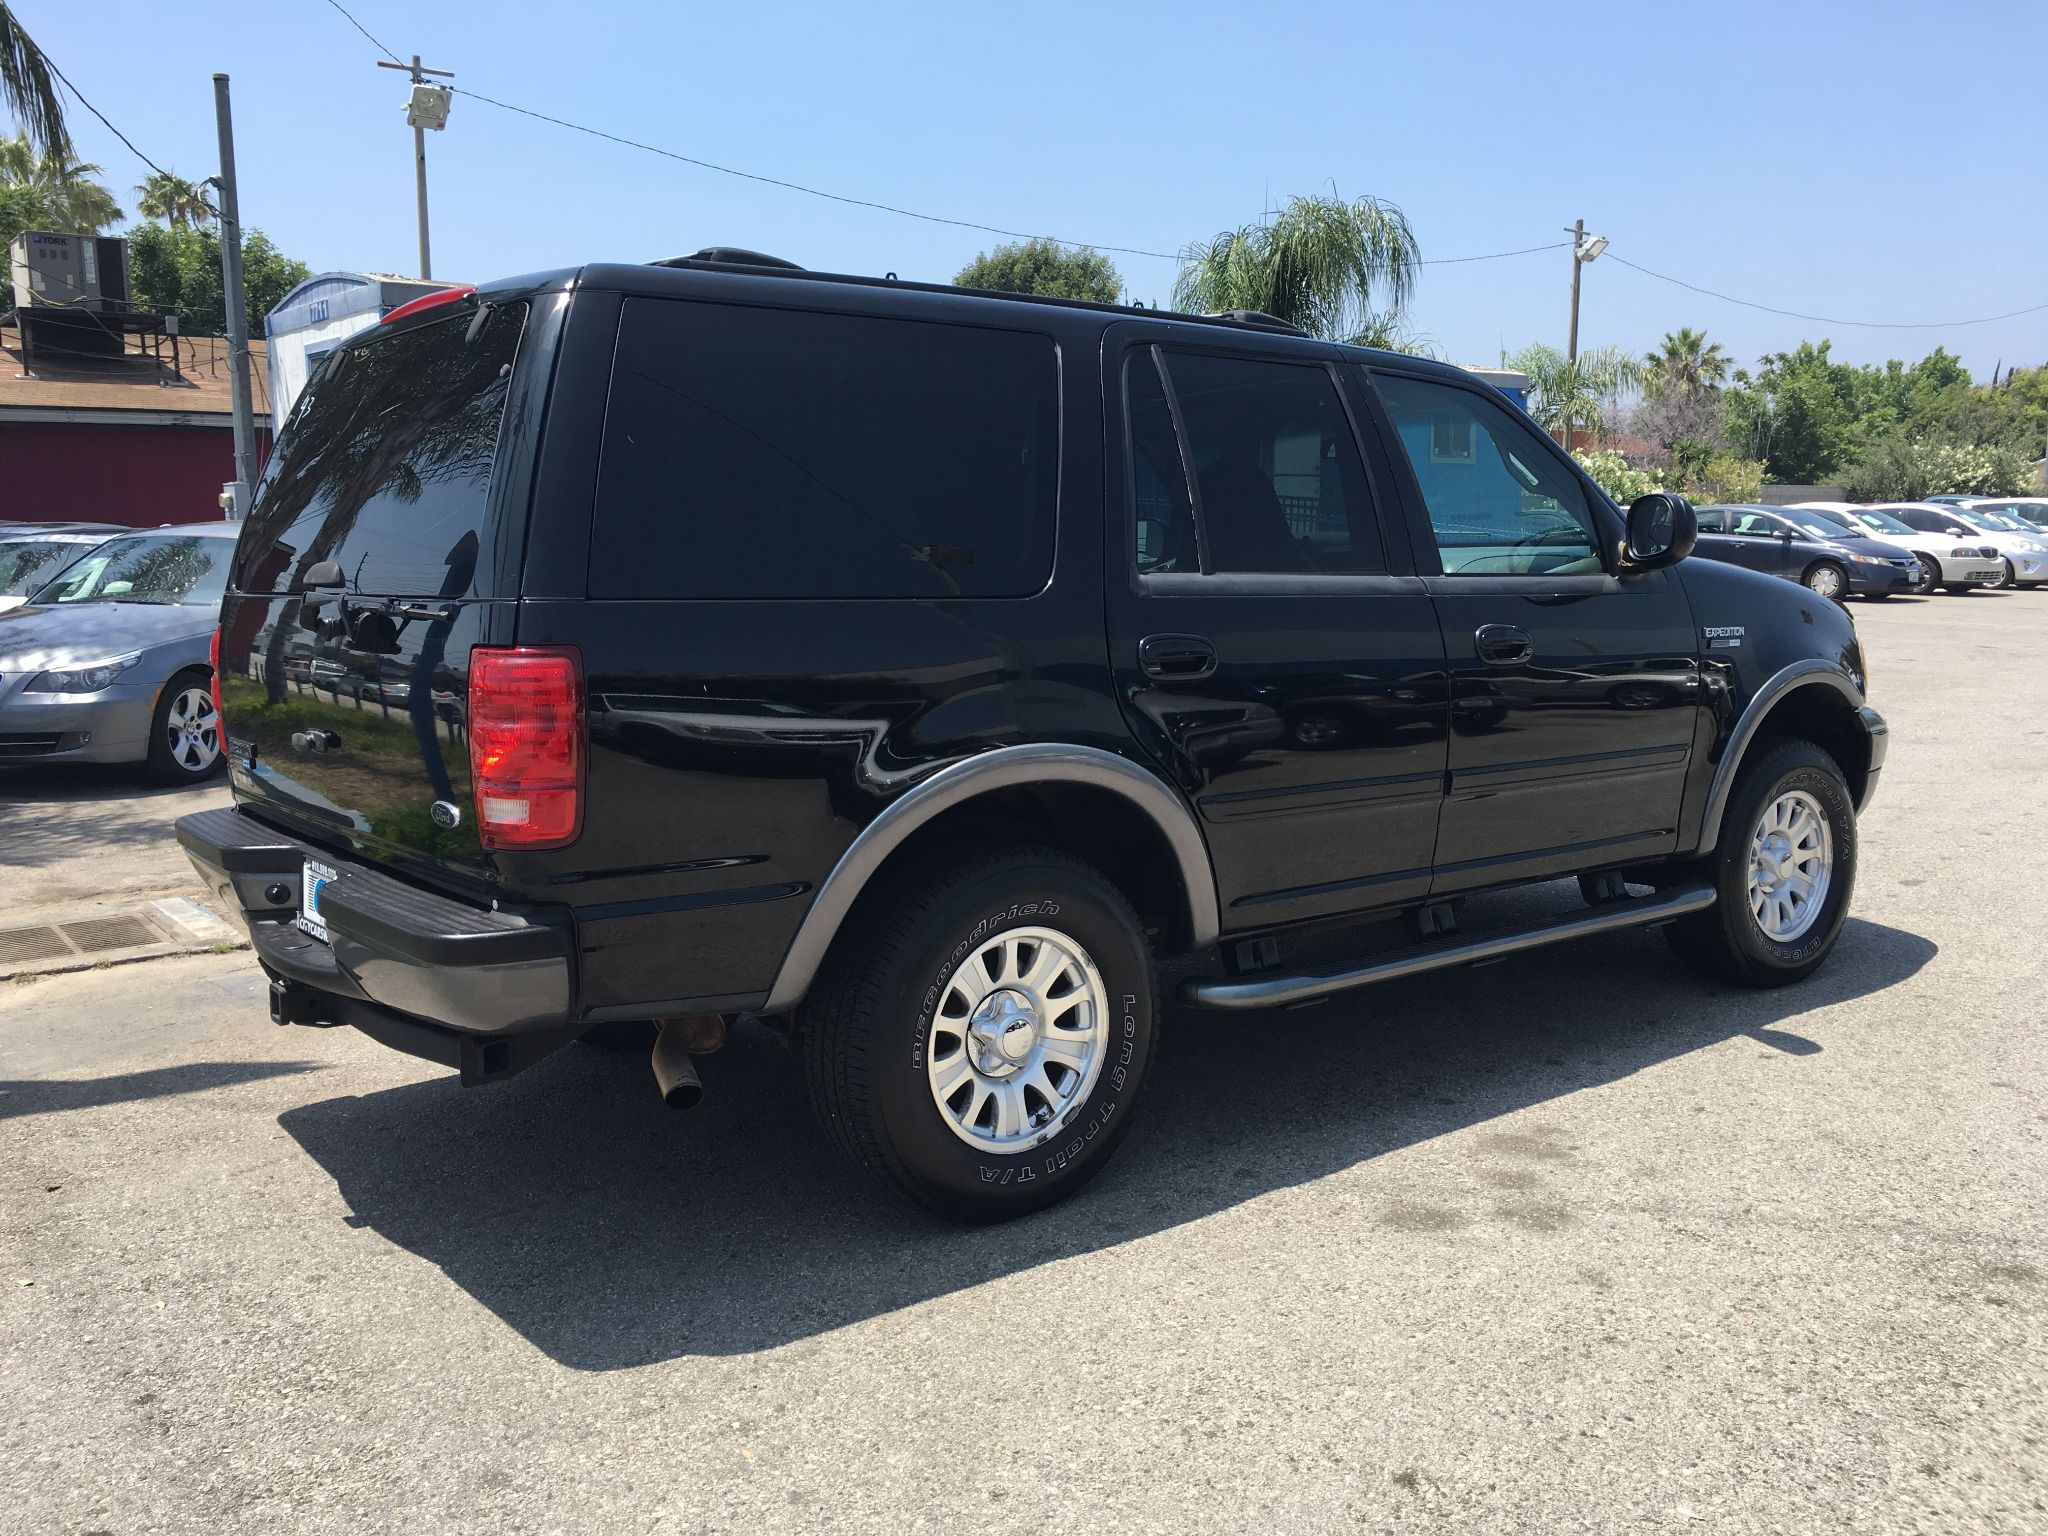 2001 Ford Expedition XLT 4X4